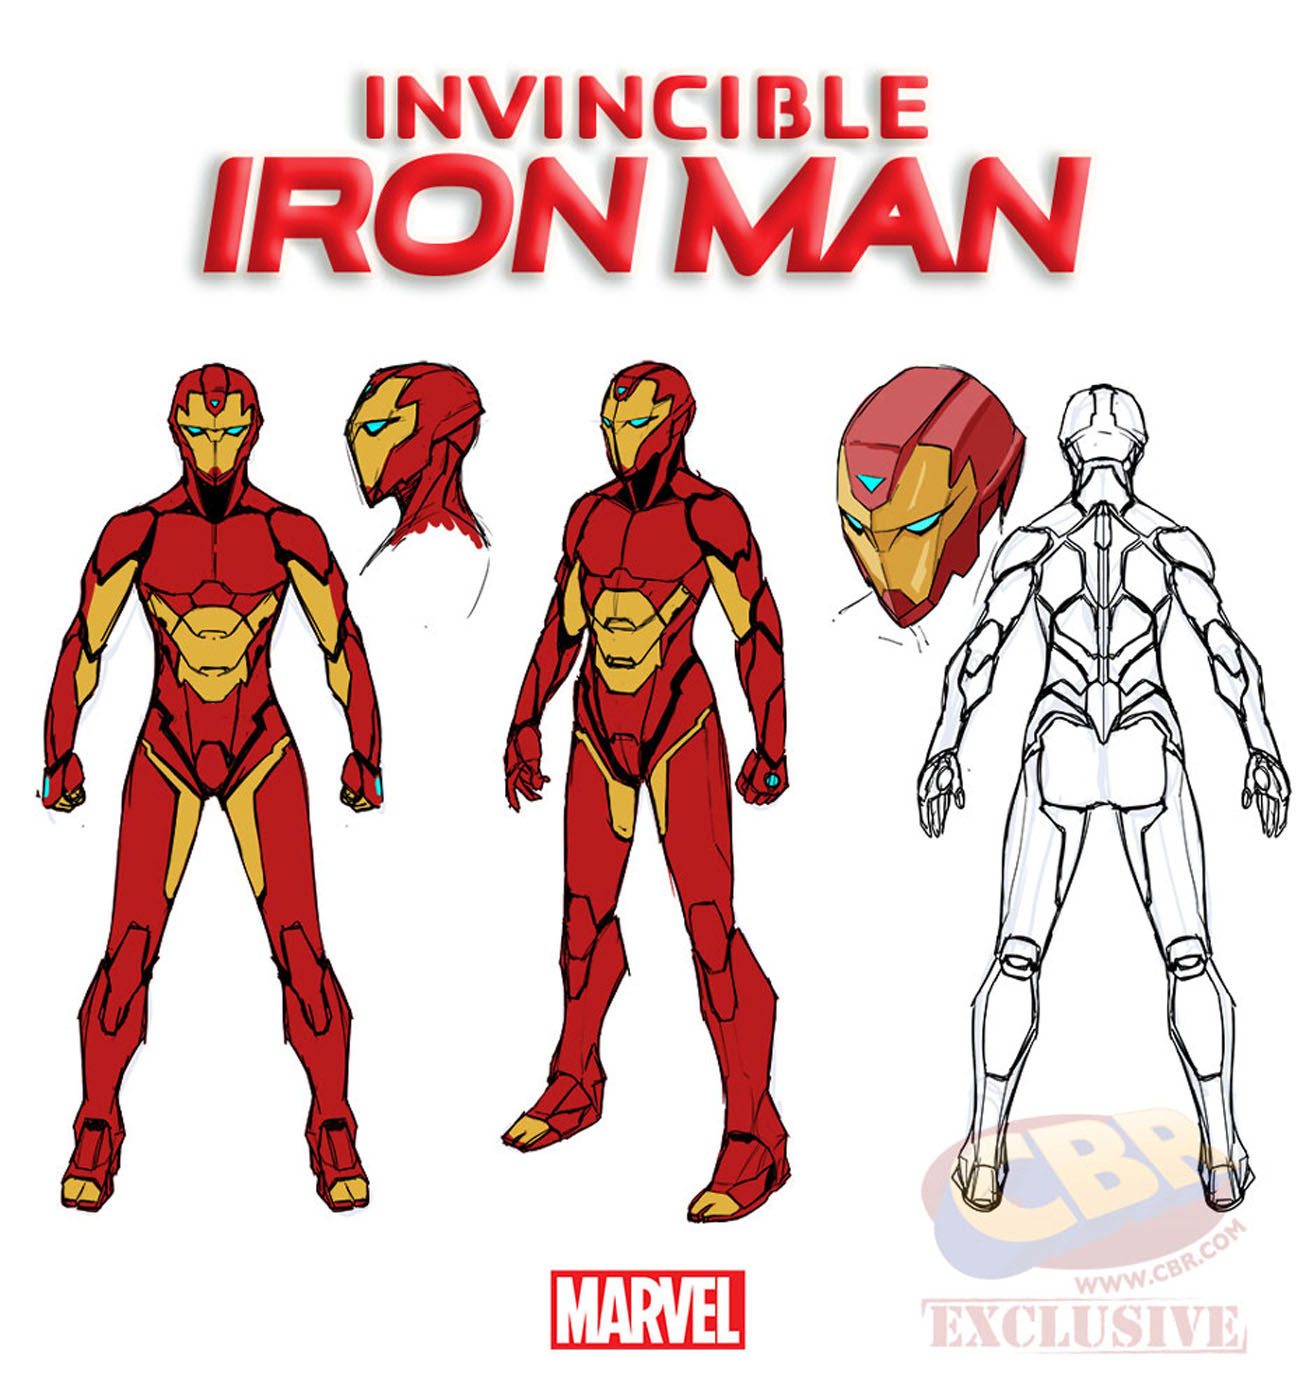 TONY STARK 'Out', New IRON 'MAN' in for Marvel NOW!